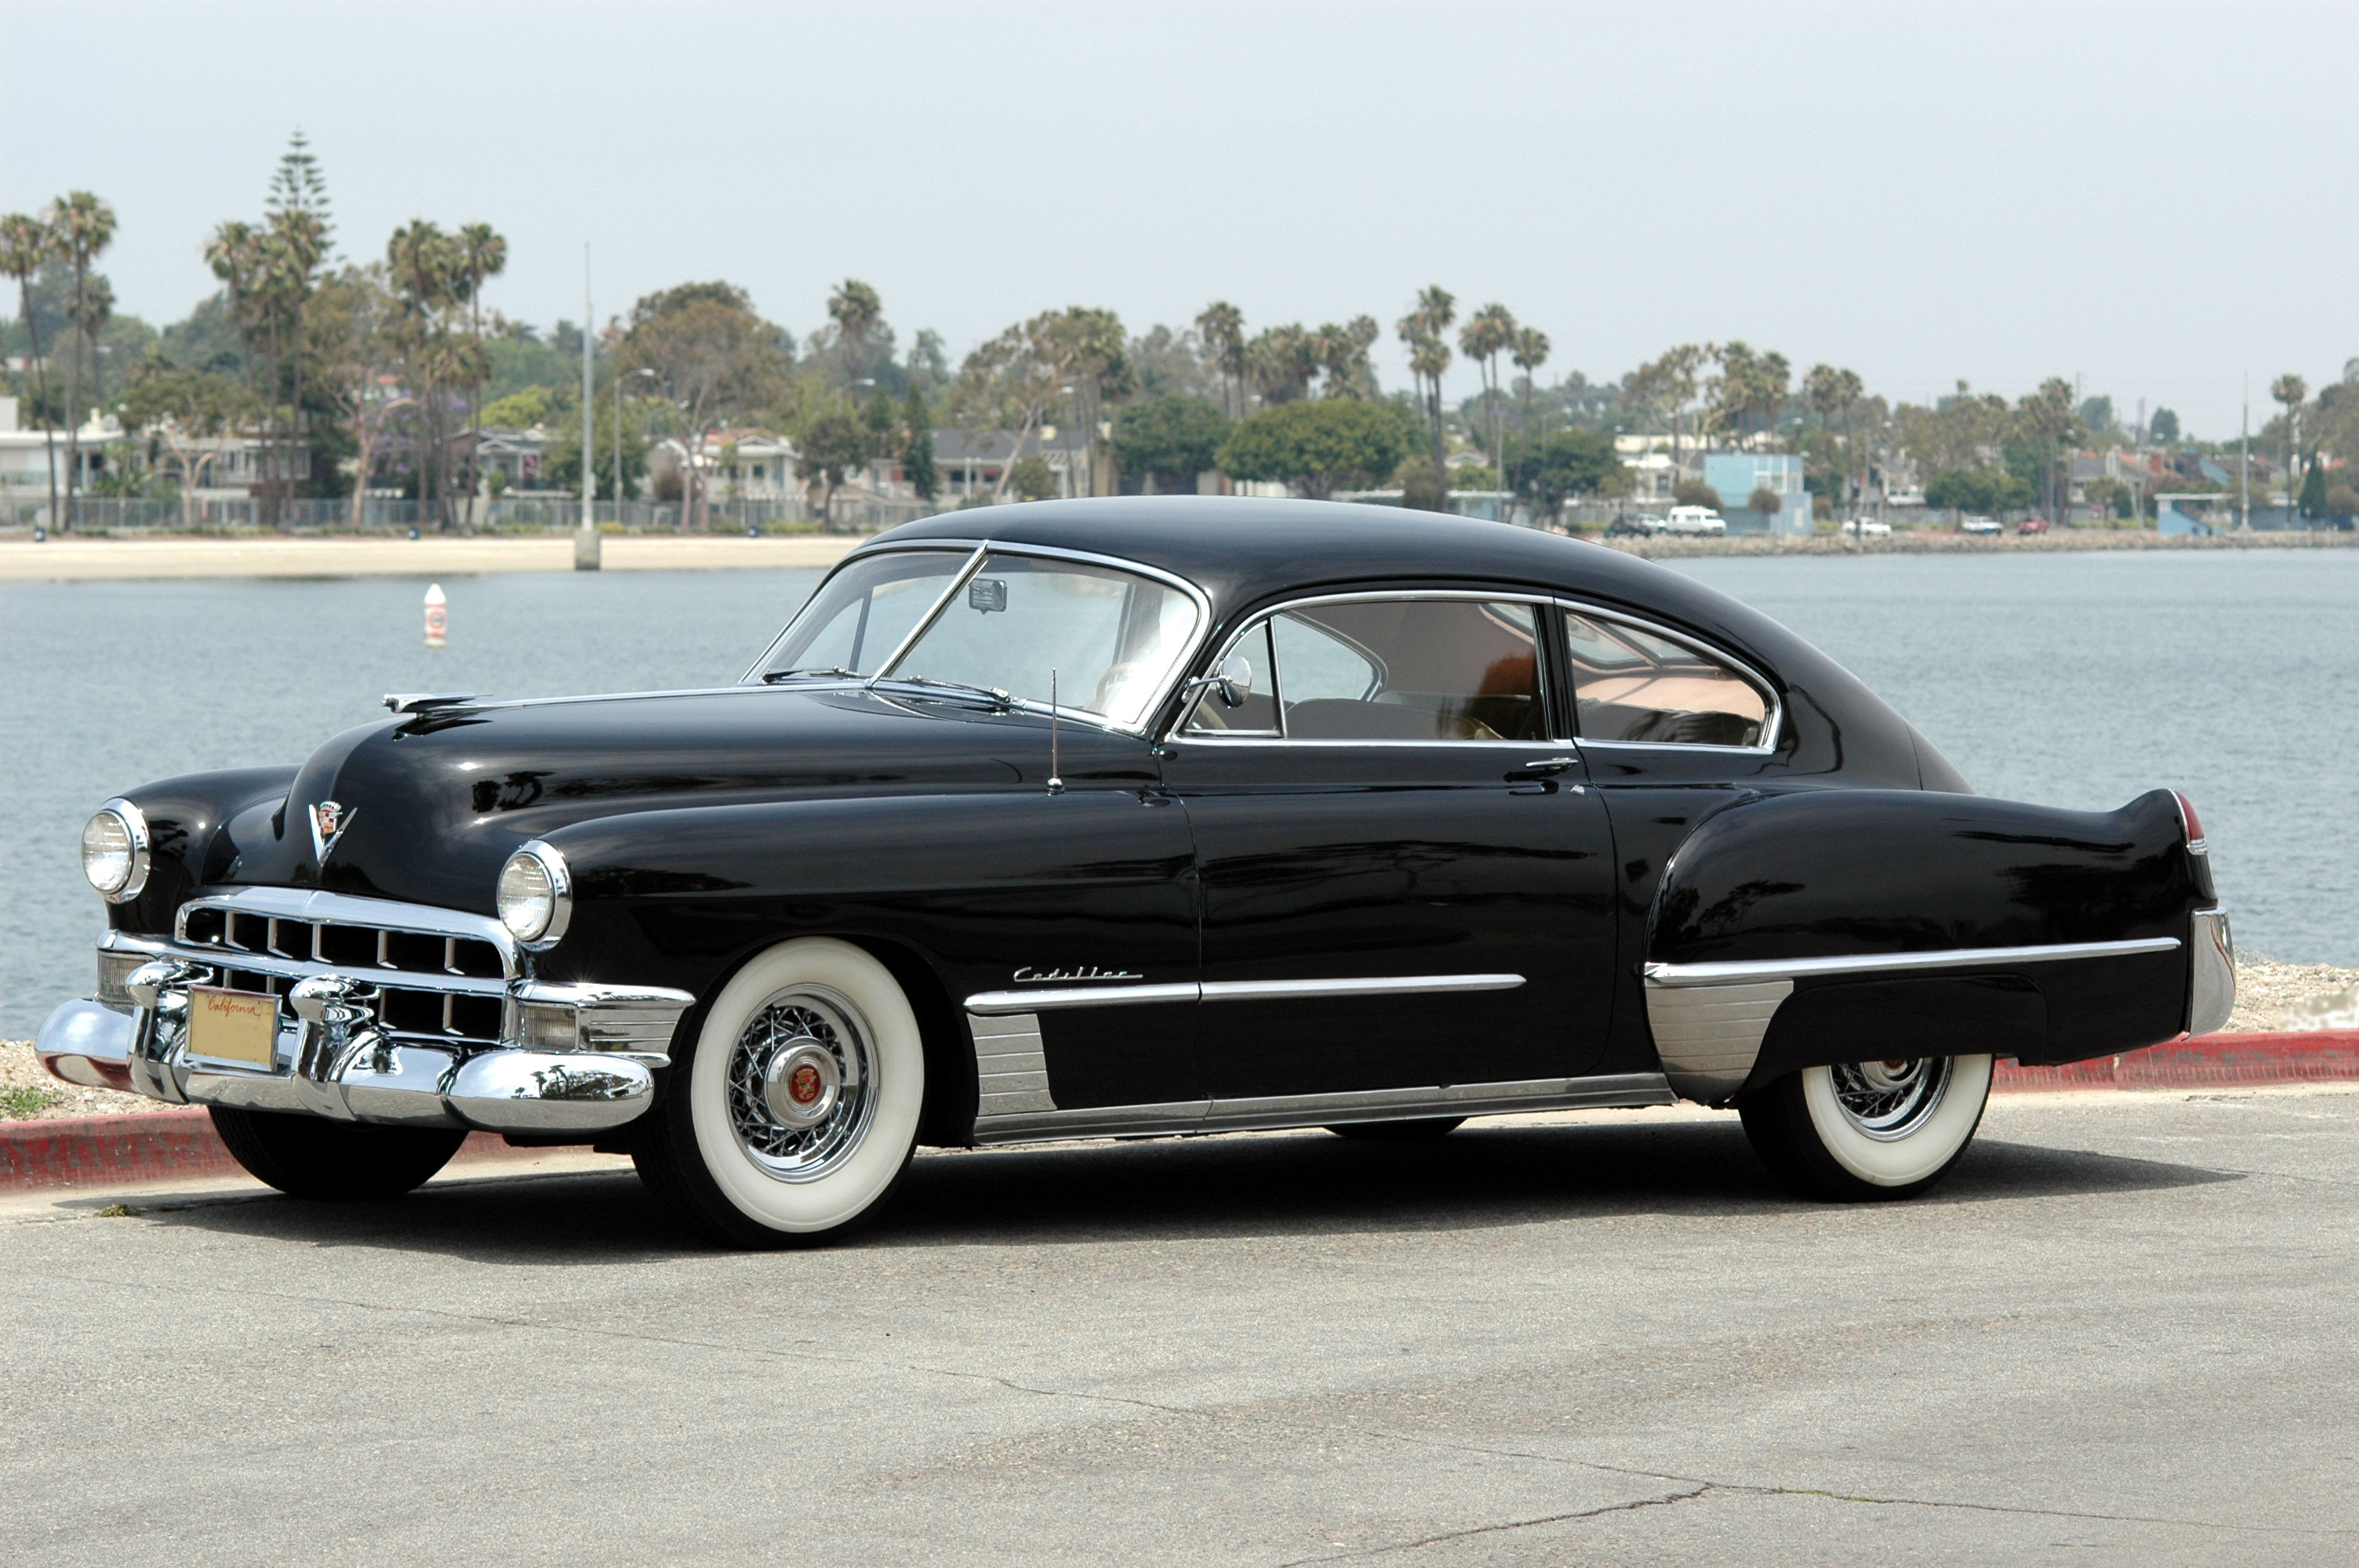 The iconic Cadillac Series 62 from 1949 might be the best looking Cadillac ever made.